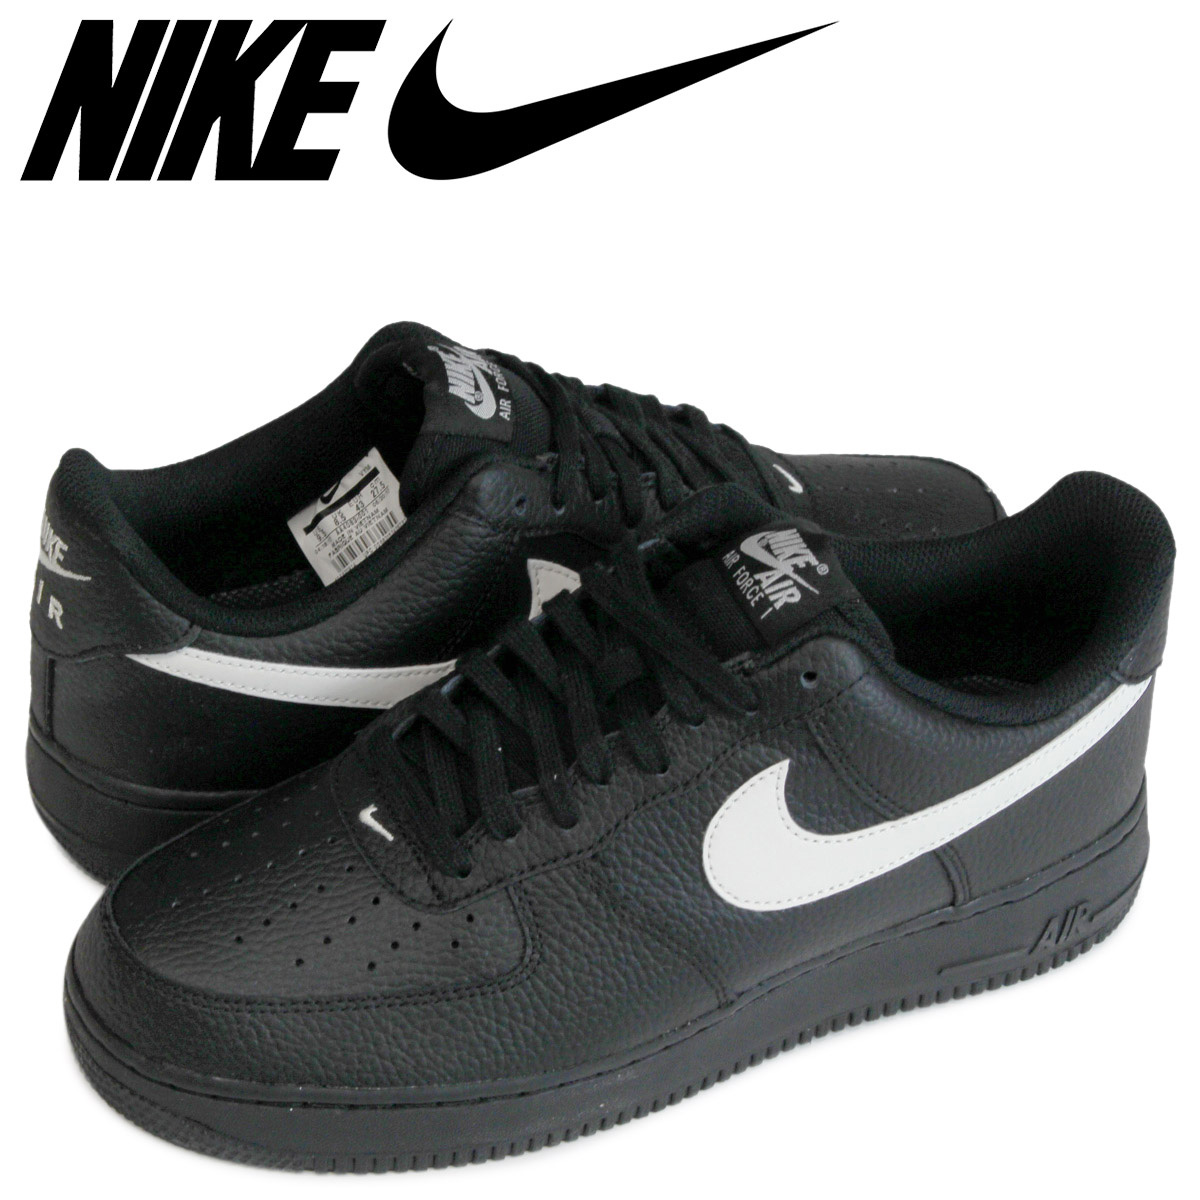 SneaK Online Shop Rakuten Global Market: Nike NIKE air force 1 07